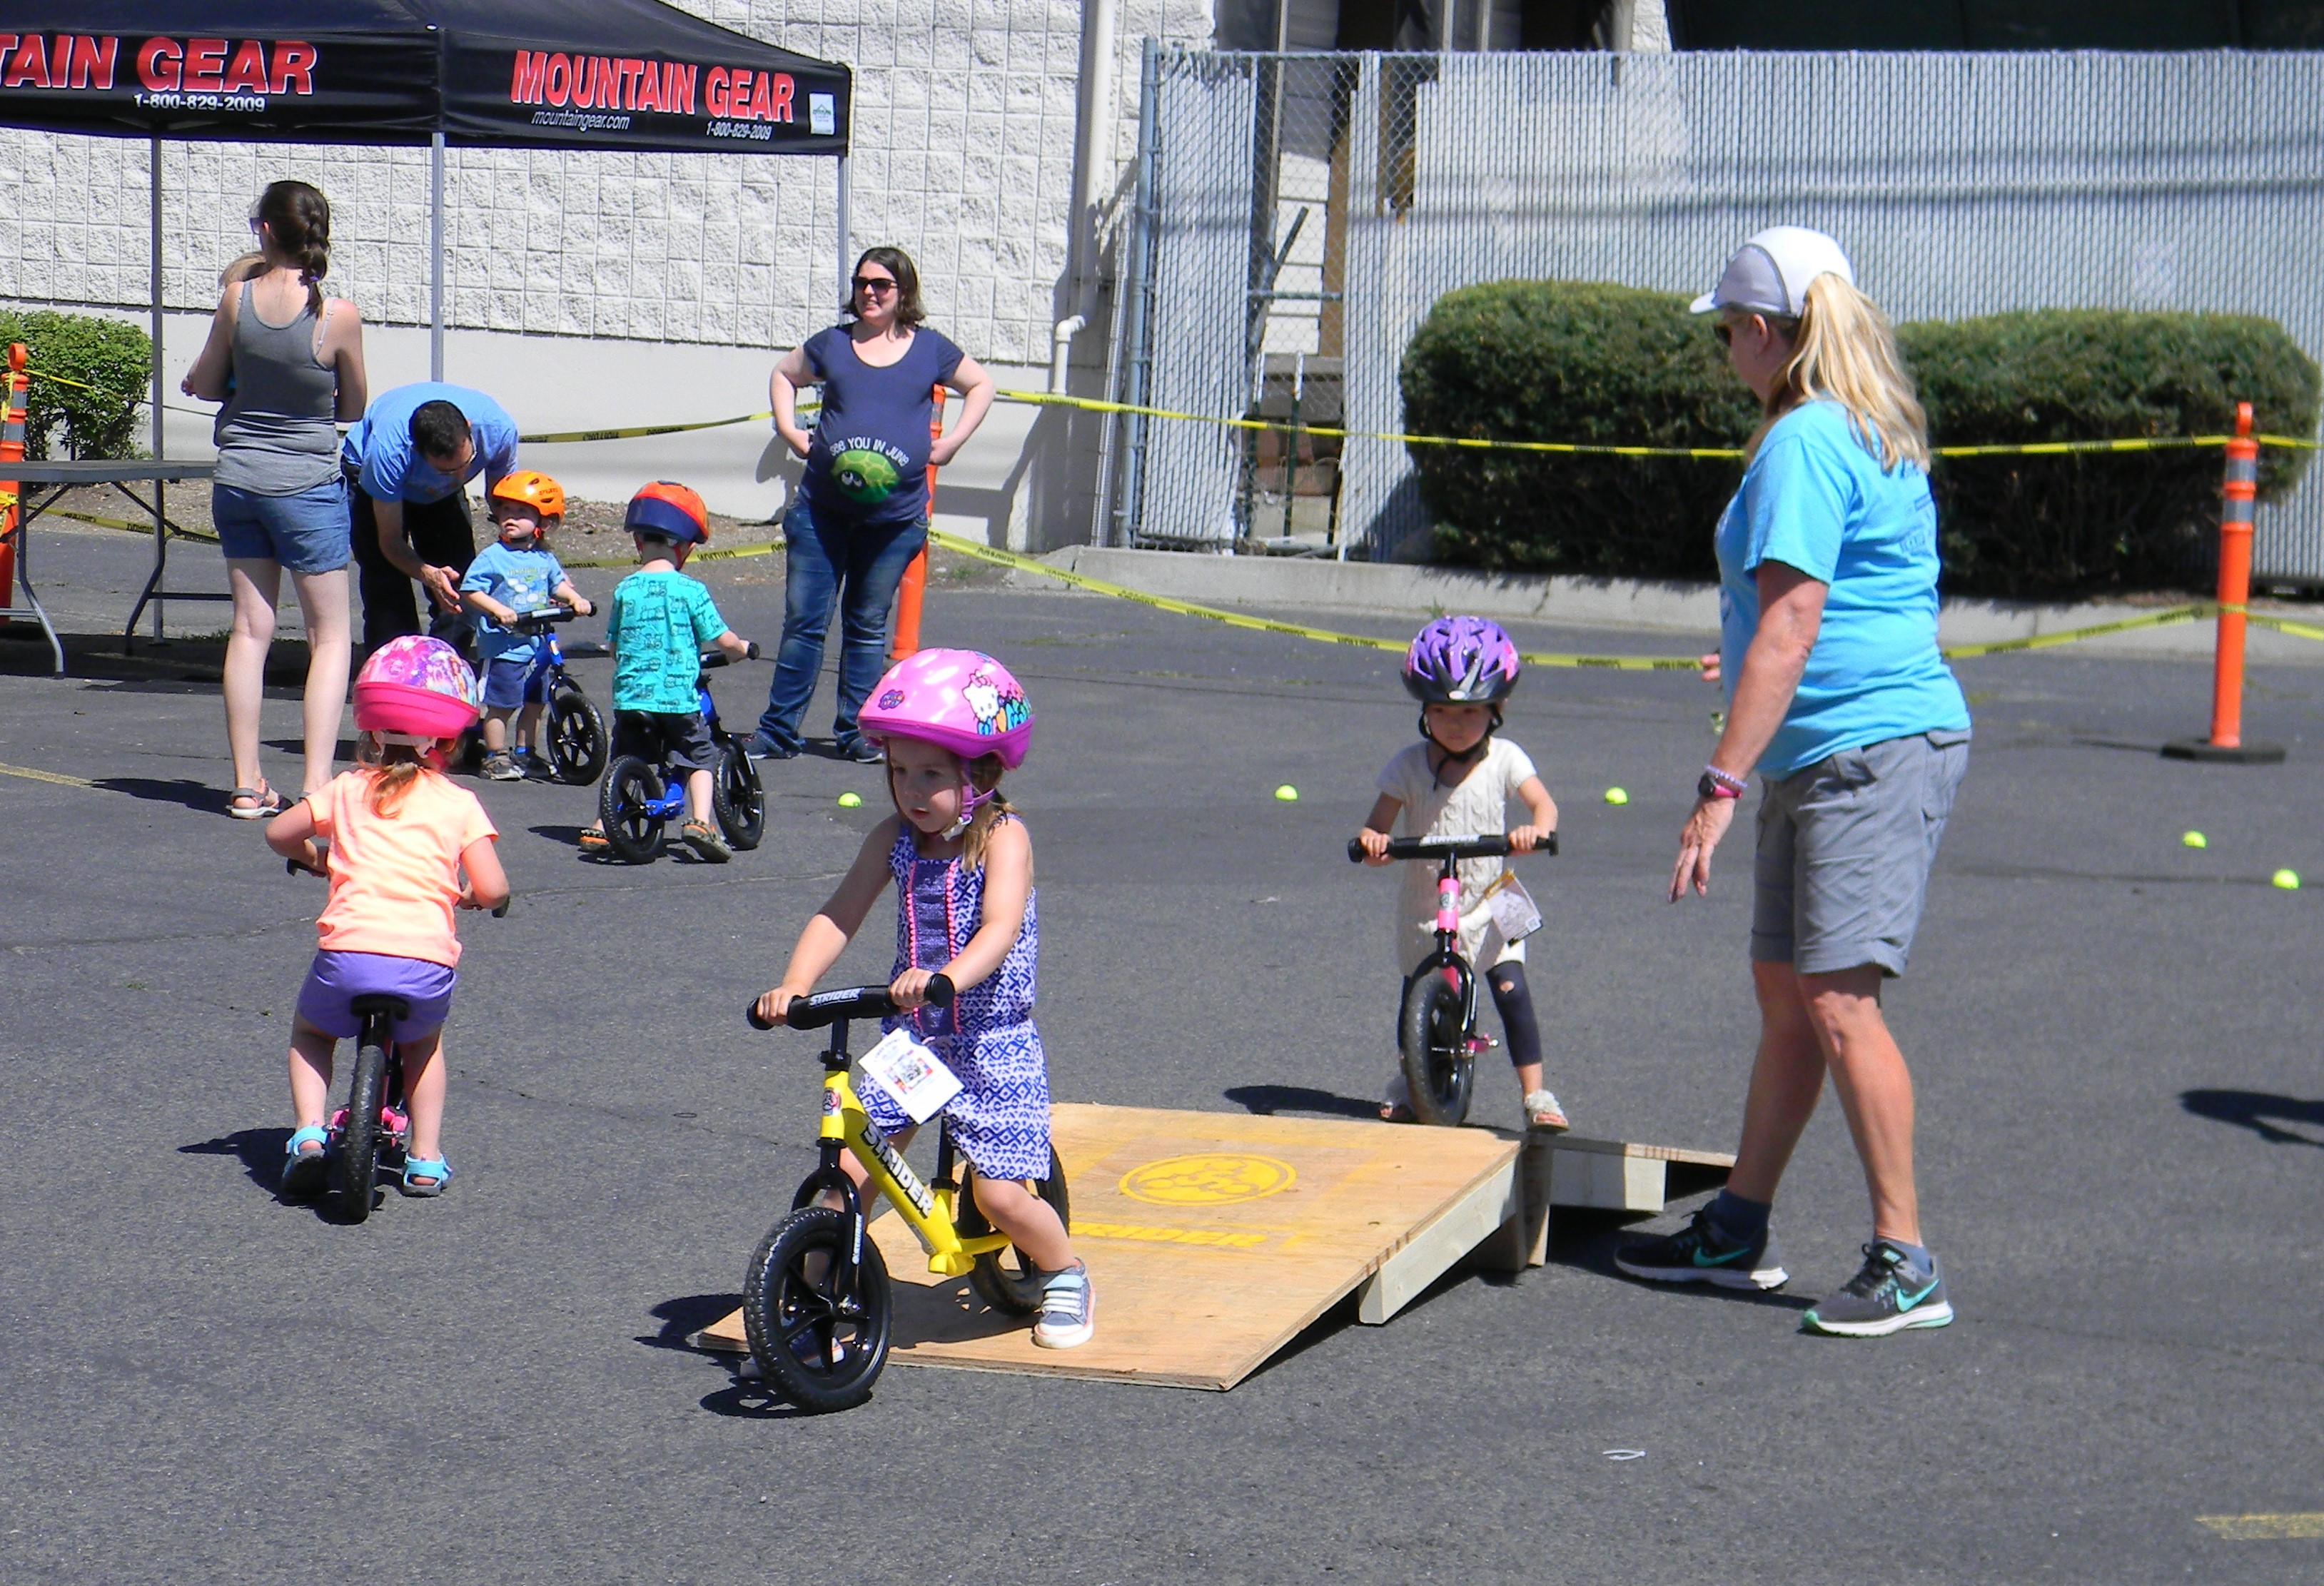 Kids ride strider bikes over a small ramp to hone their balance skills.